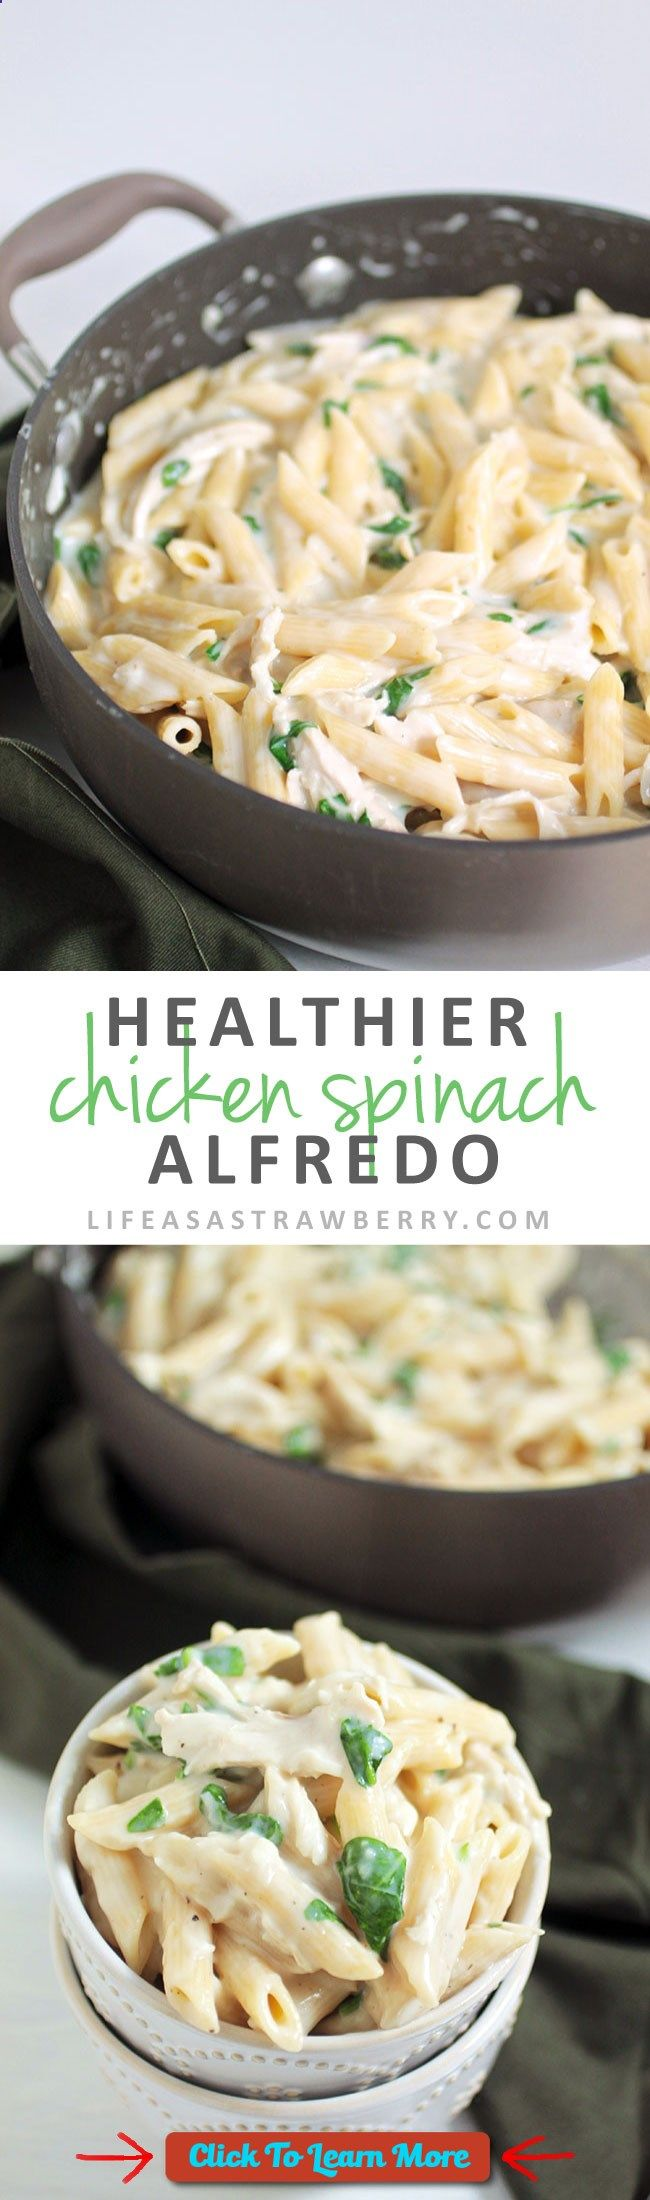 #FastestWayToLoseWeight by EATING, Click to learn more, Healthier Chicken Spinach Alfredo | Lighten up a classic Fettuccine Alfredo recipe with this easy pasta recipe! Ready in 30 minutes with no heavy cream. A great healthy recipe for busy weeknights with chicken and plenty of fresh spinach. , #HealthyRecipes, #FitnessRecipes, #BurnFatRecipes, #WeightLossRecipes, #WeightLossDiets